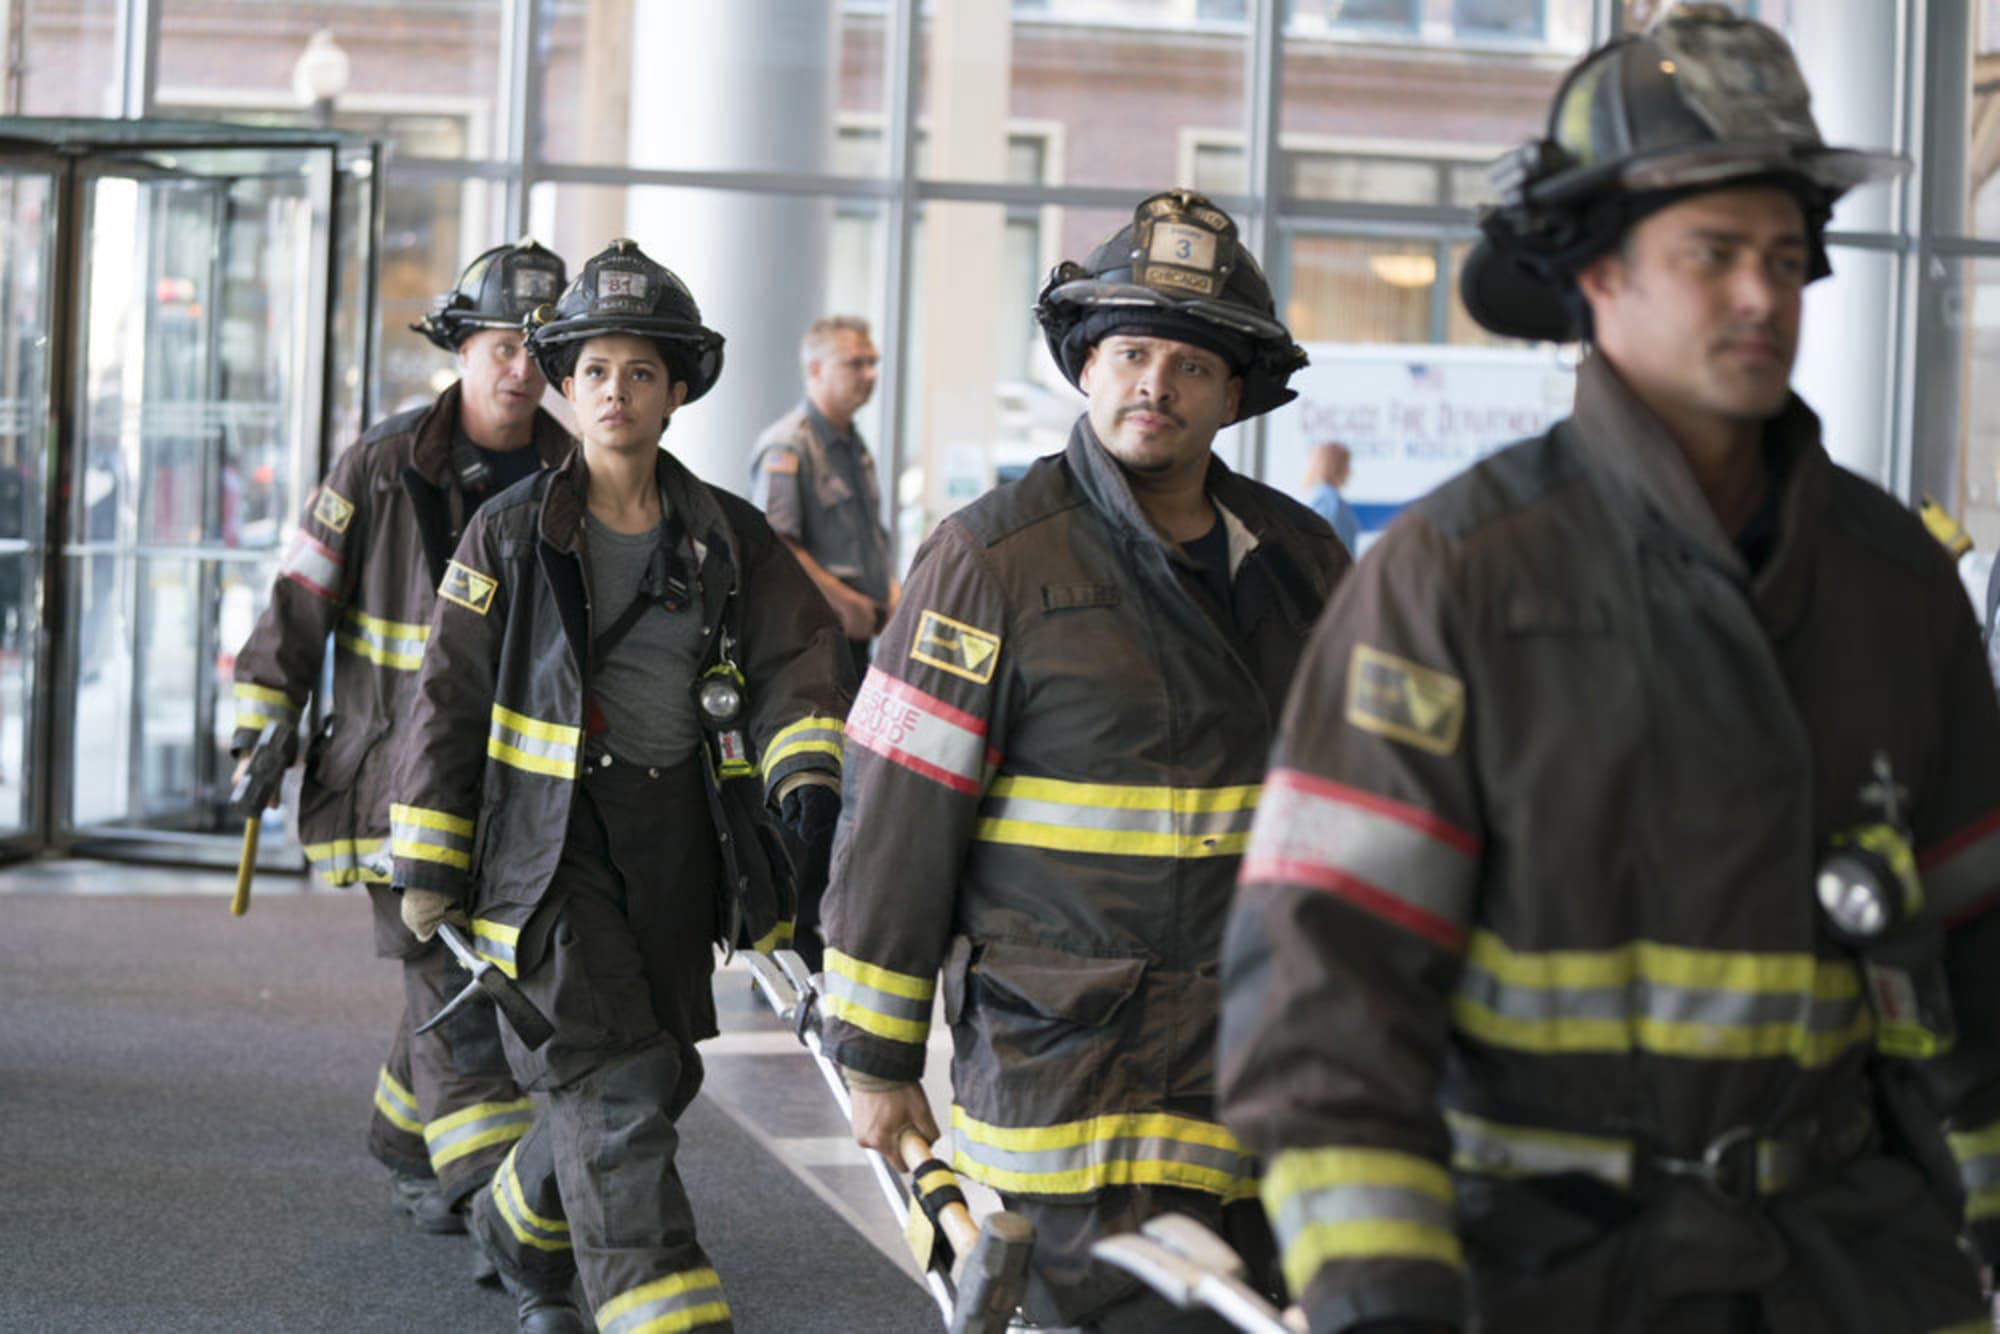 Chicago Fire Season 7 premiere recap: Who's playing chess with Otis?